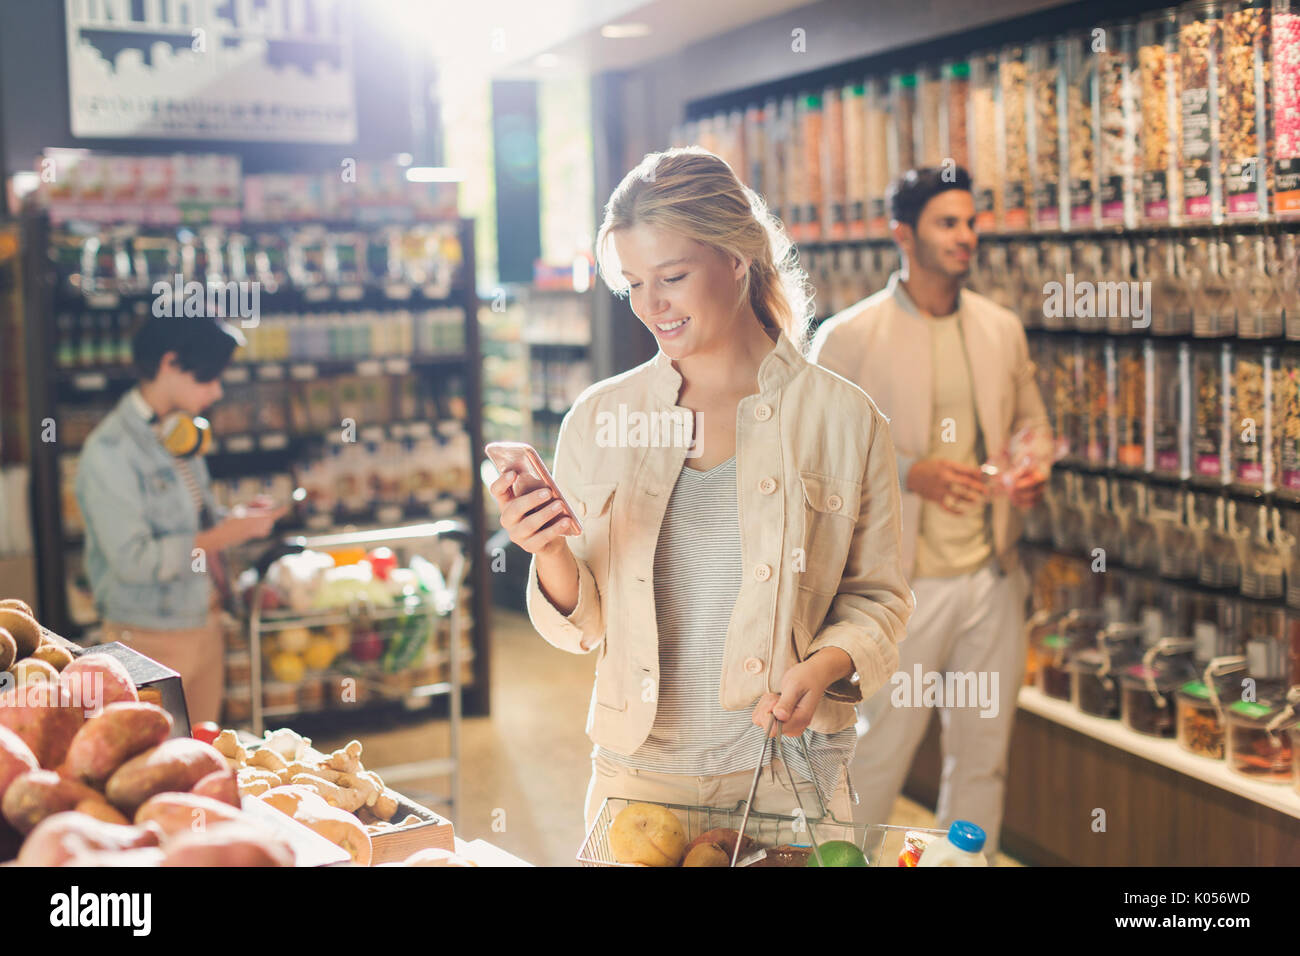 Young woman using cell phone, grocery shopping in market - Stock Image